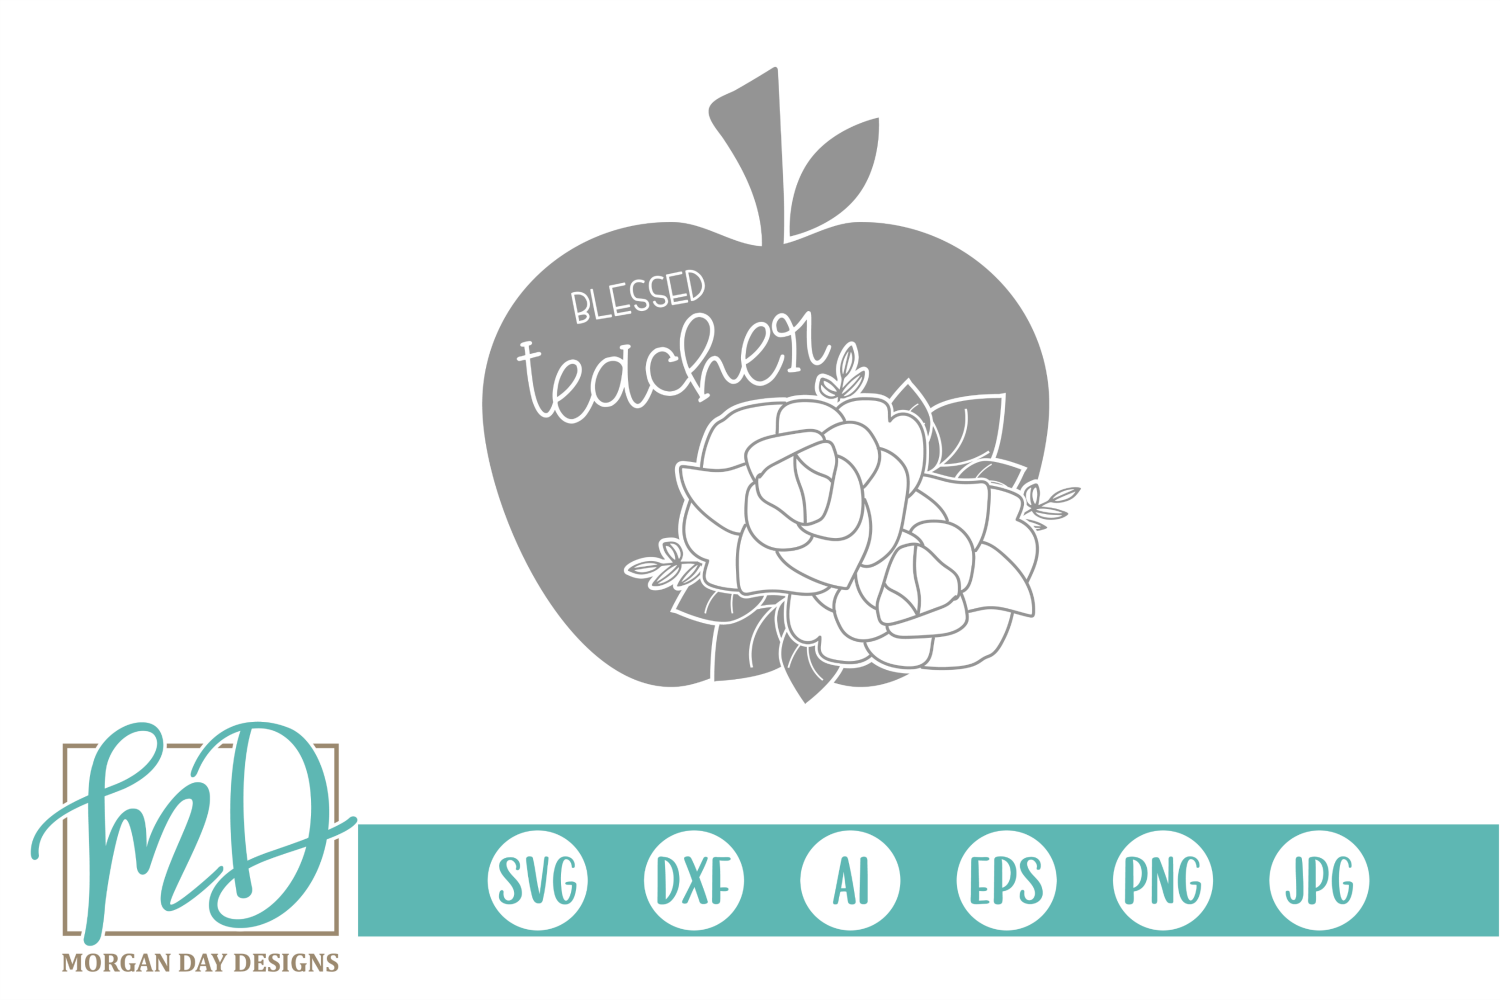 Back to School - School - Teacher - Blessed Teacher SVG example image 1